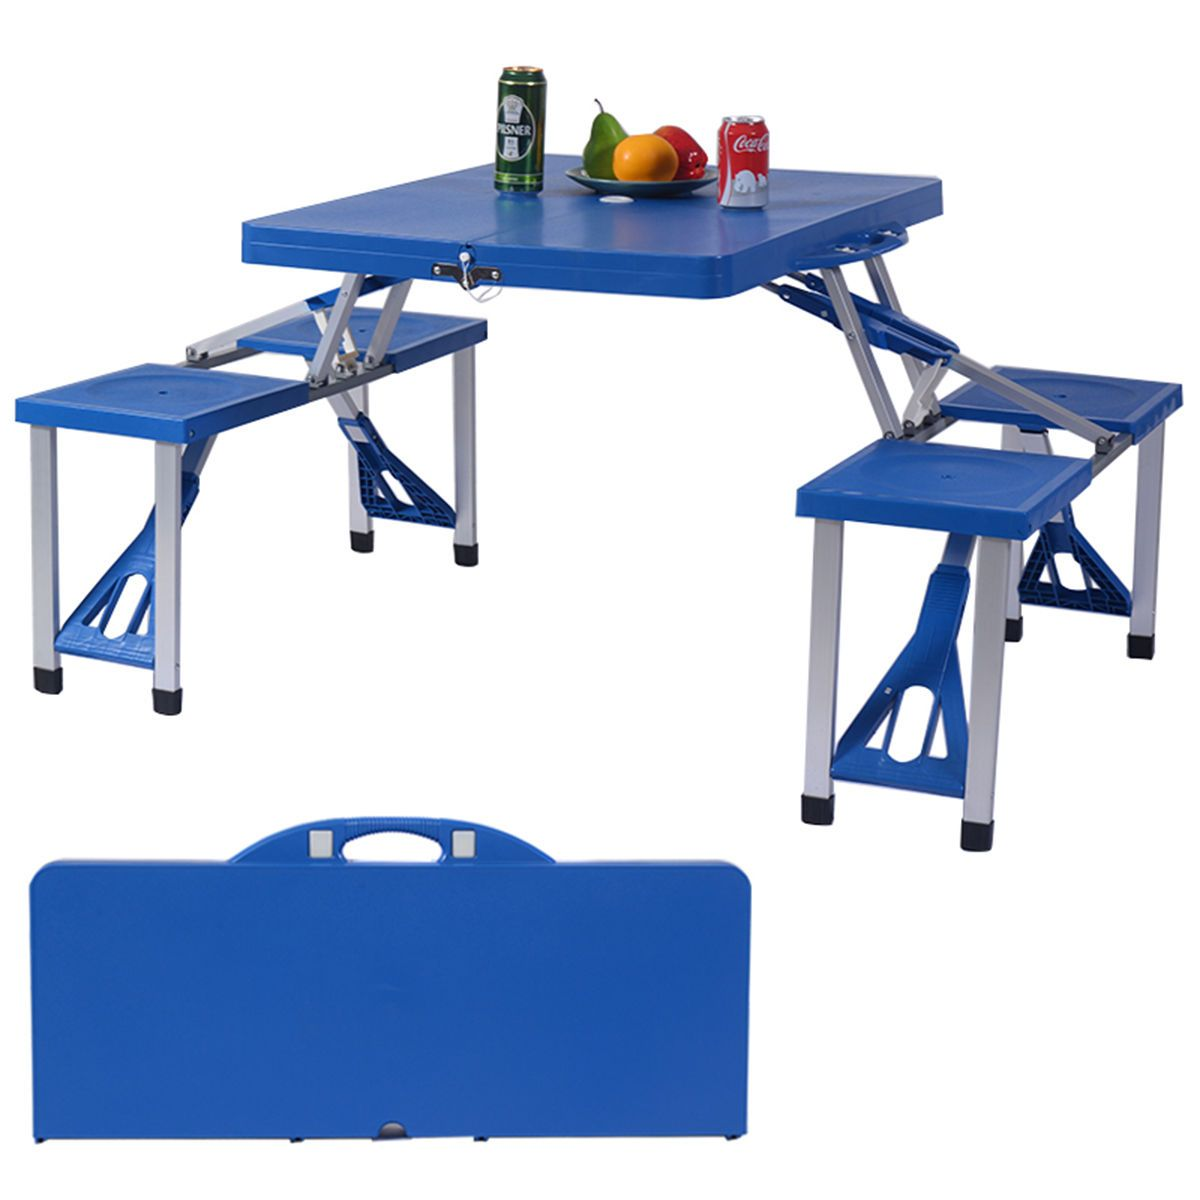 outdoor foldable portable aluminum plastic picnic table camping w bench 4 seat